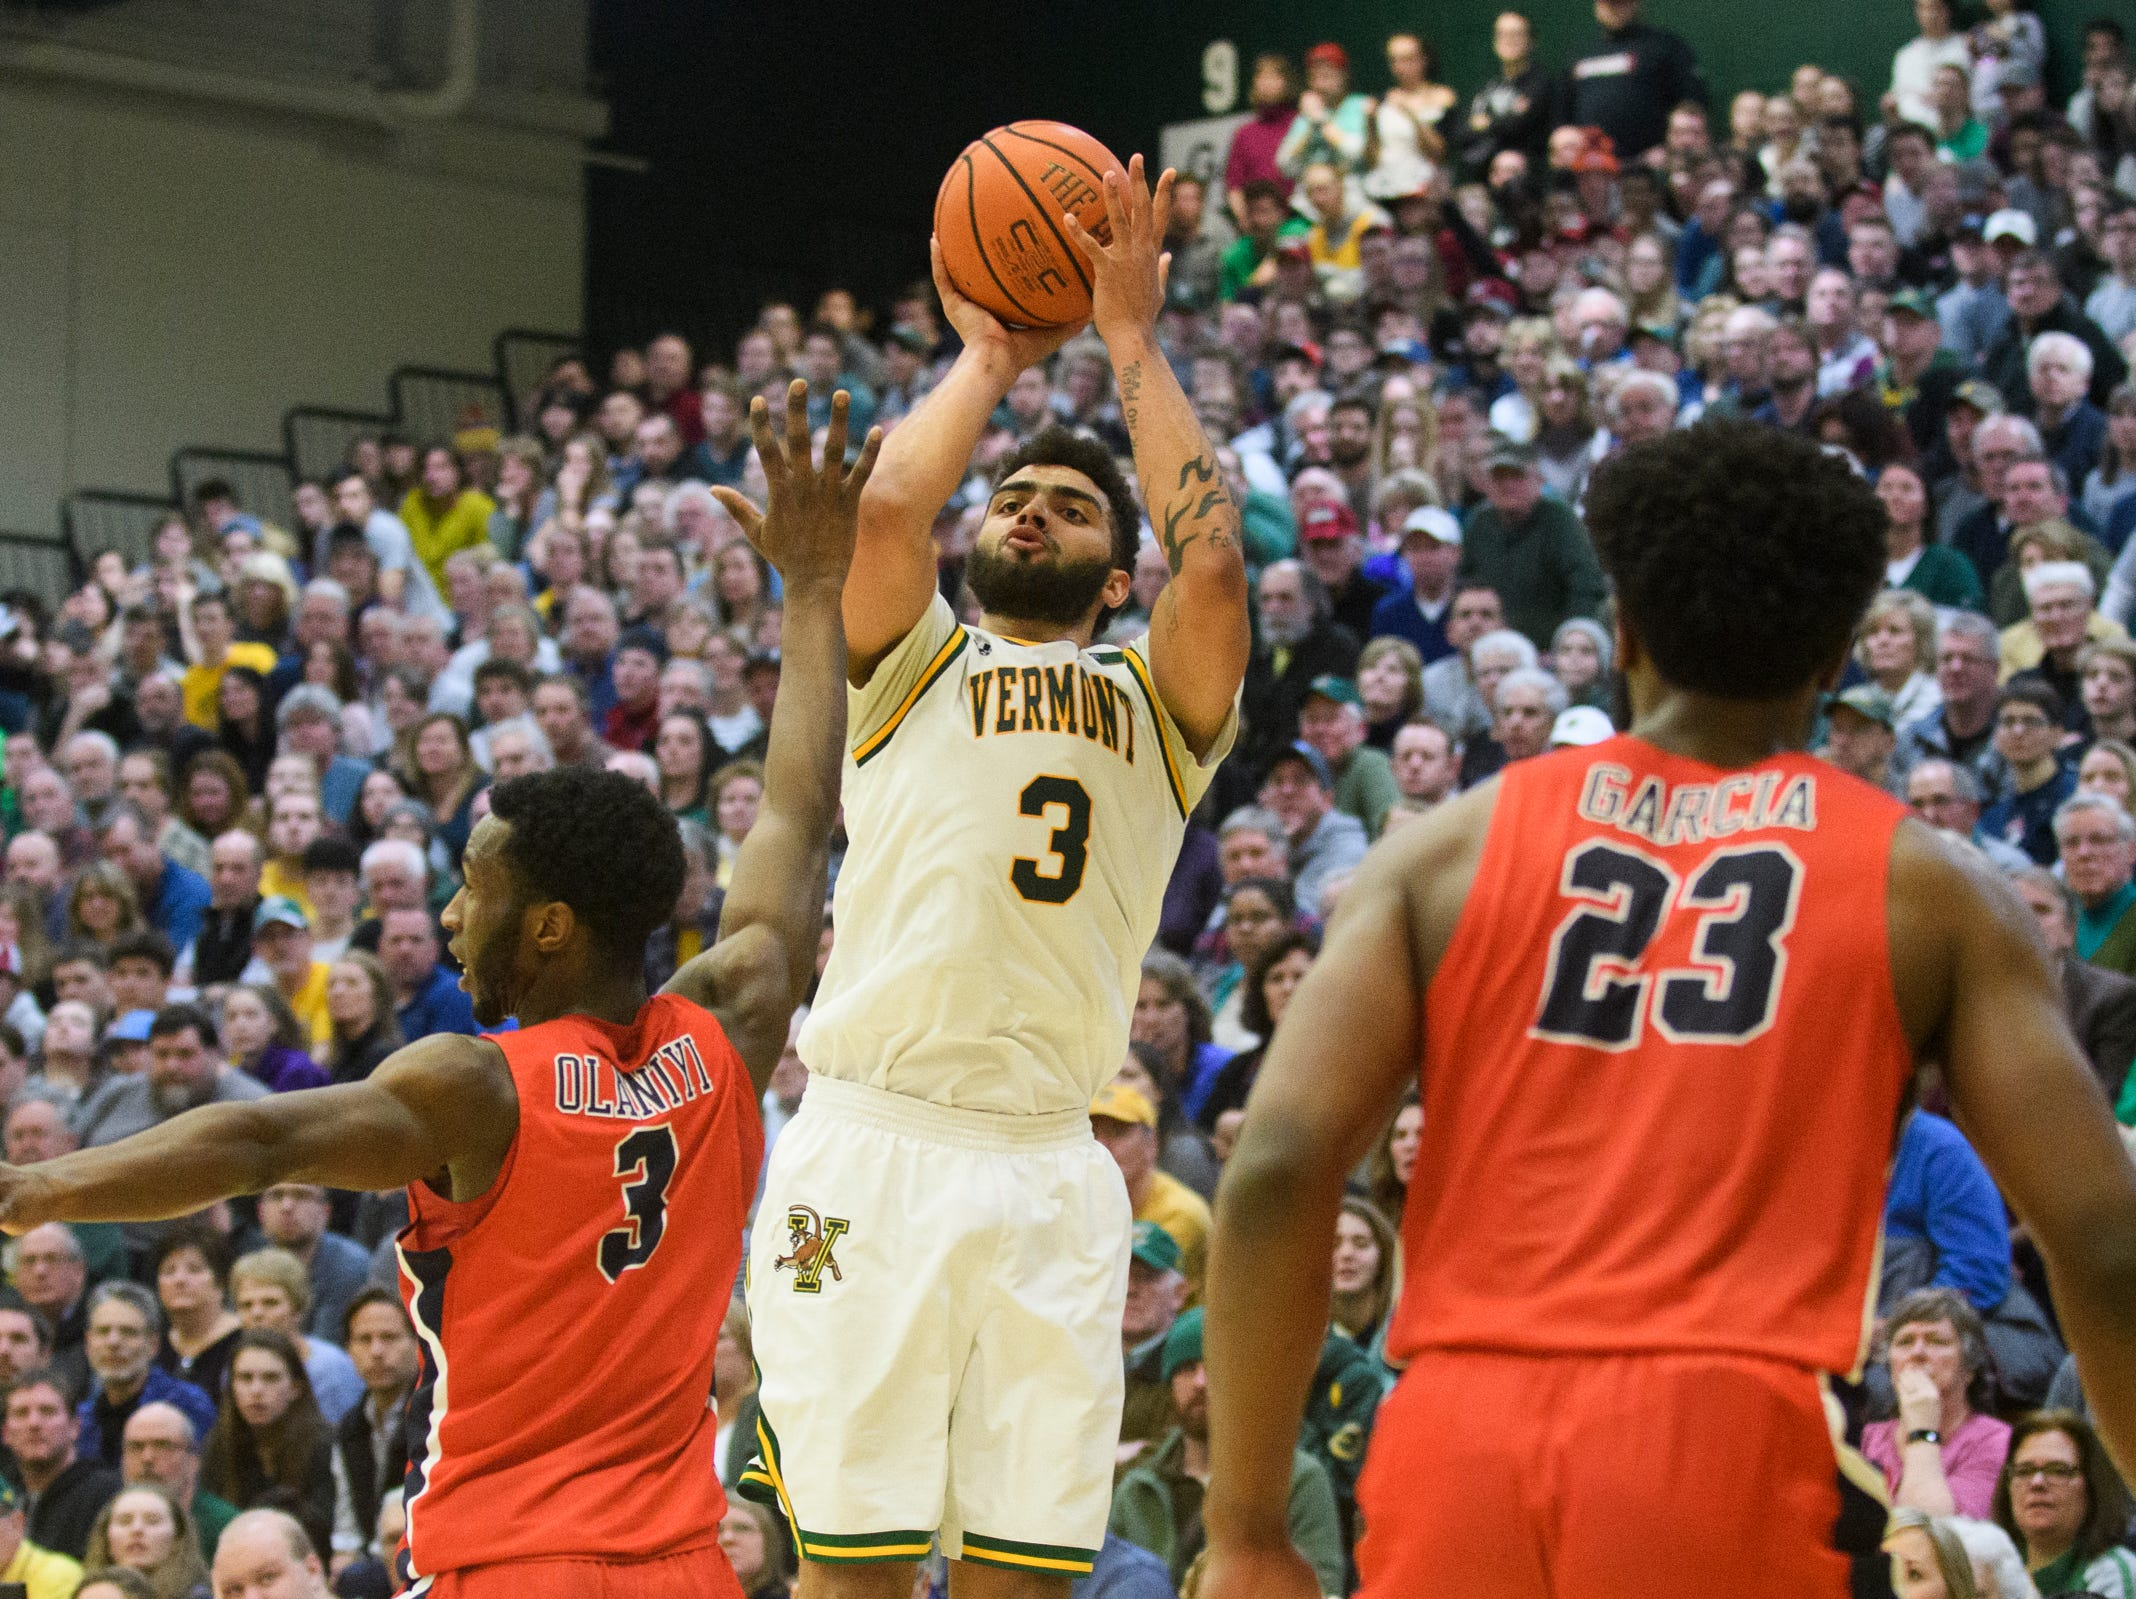 Vermont forward Anthony Lamb (3) shoots the ball over Stony Brook's Elijah Olaniyi (3) during the men's basketball game between the Stony Brook Seawolves and the Vermont Catamounts at Patrick Gym on Saturday night March 2, 2019 in Burlington, Vermont.